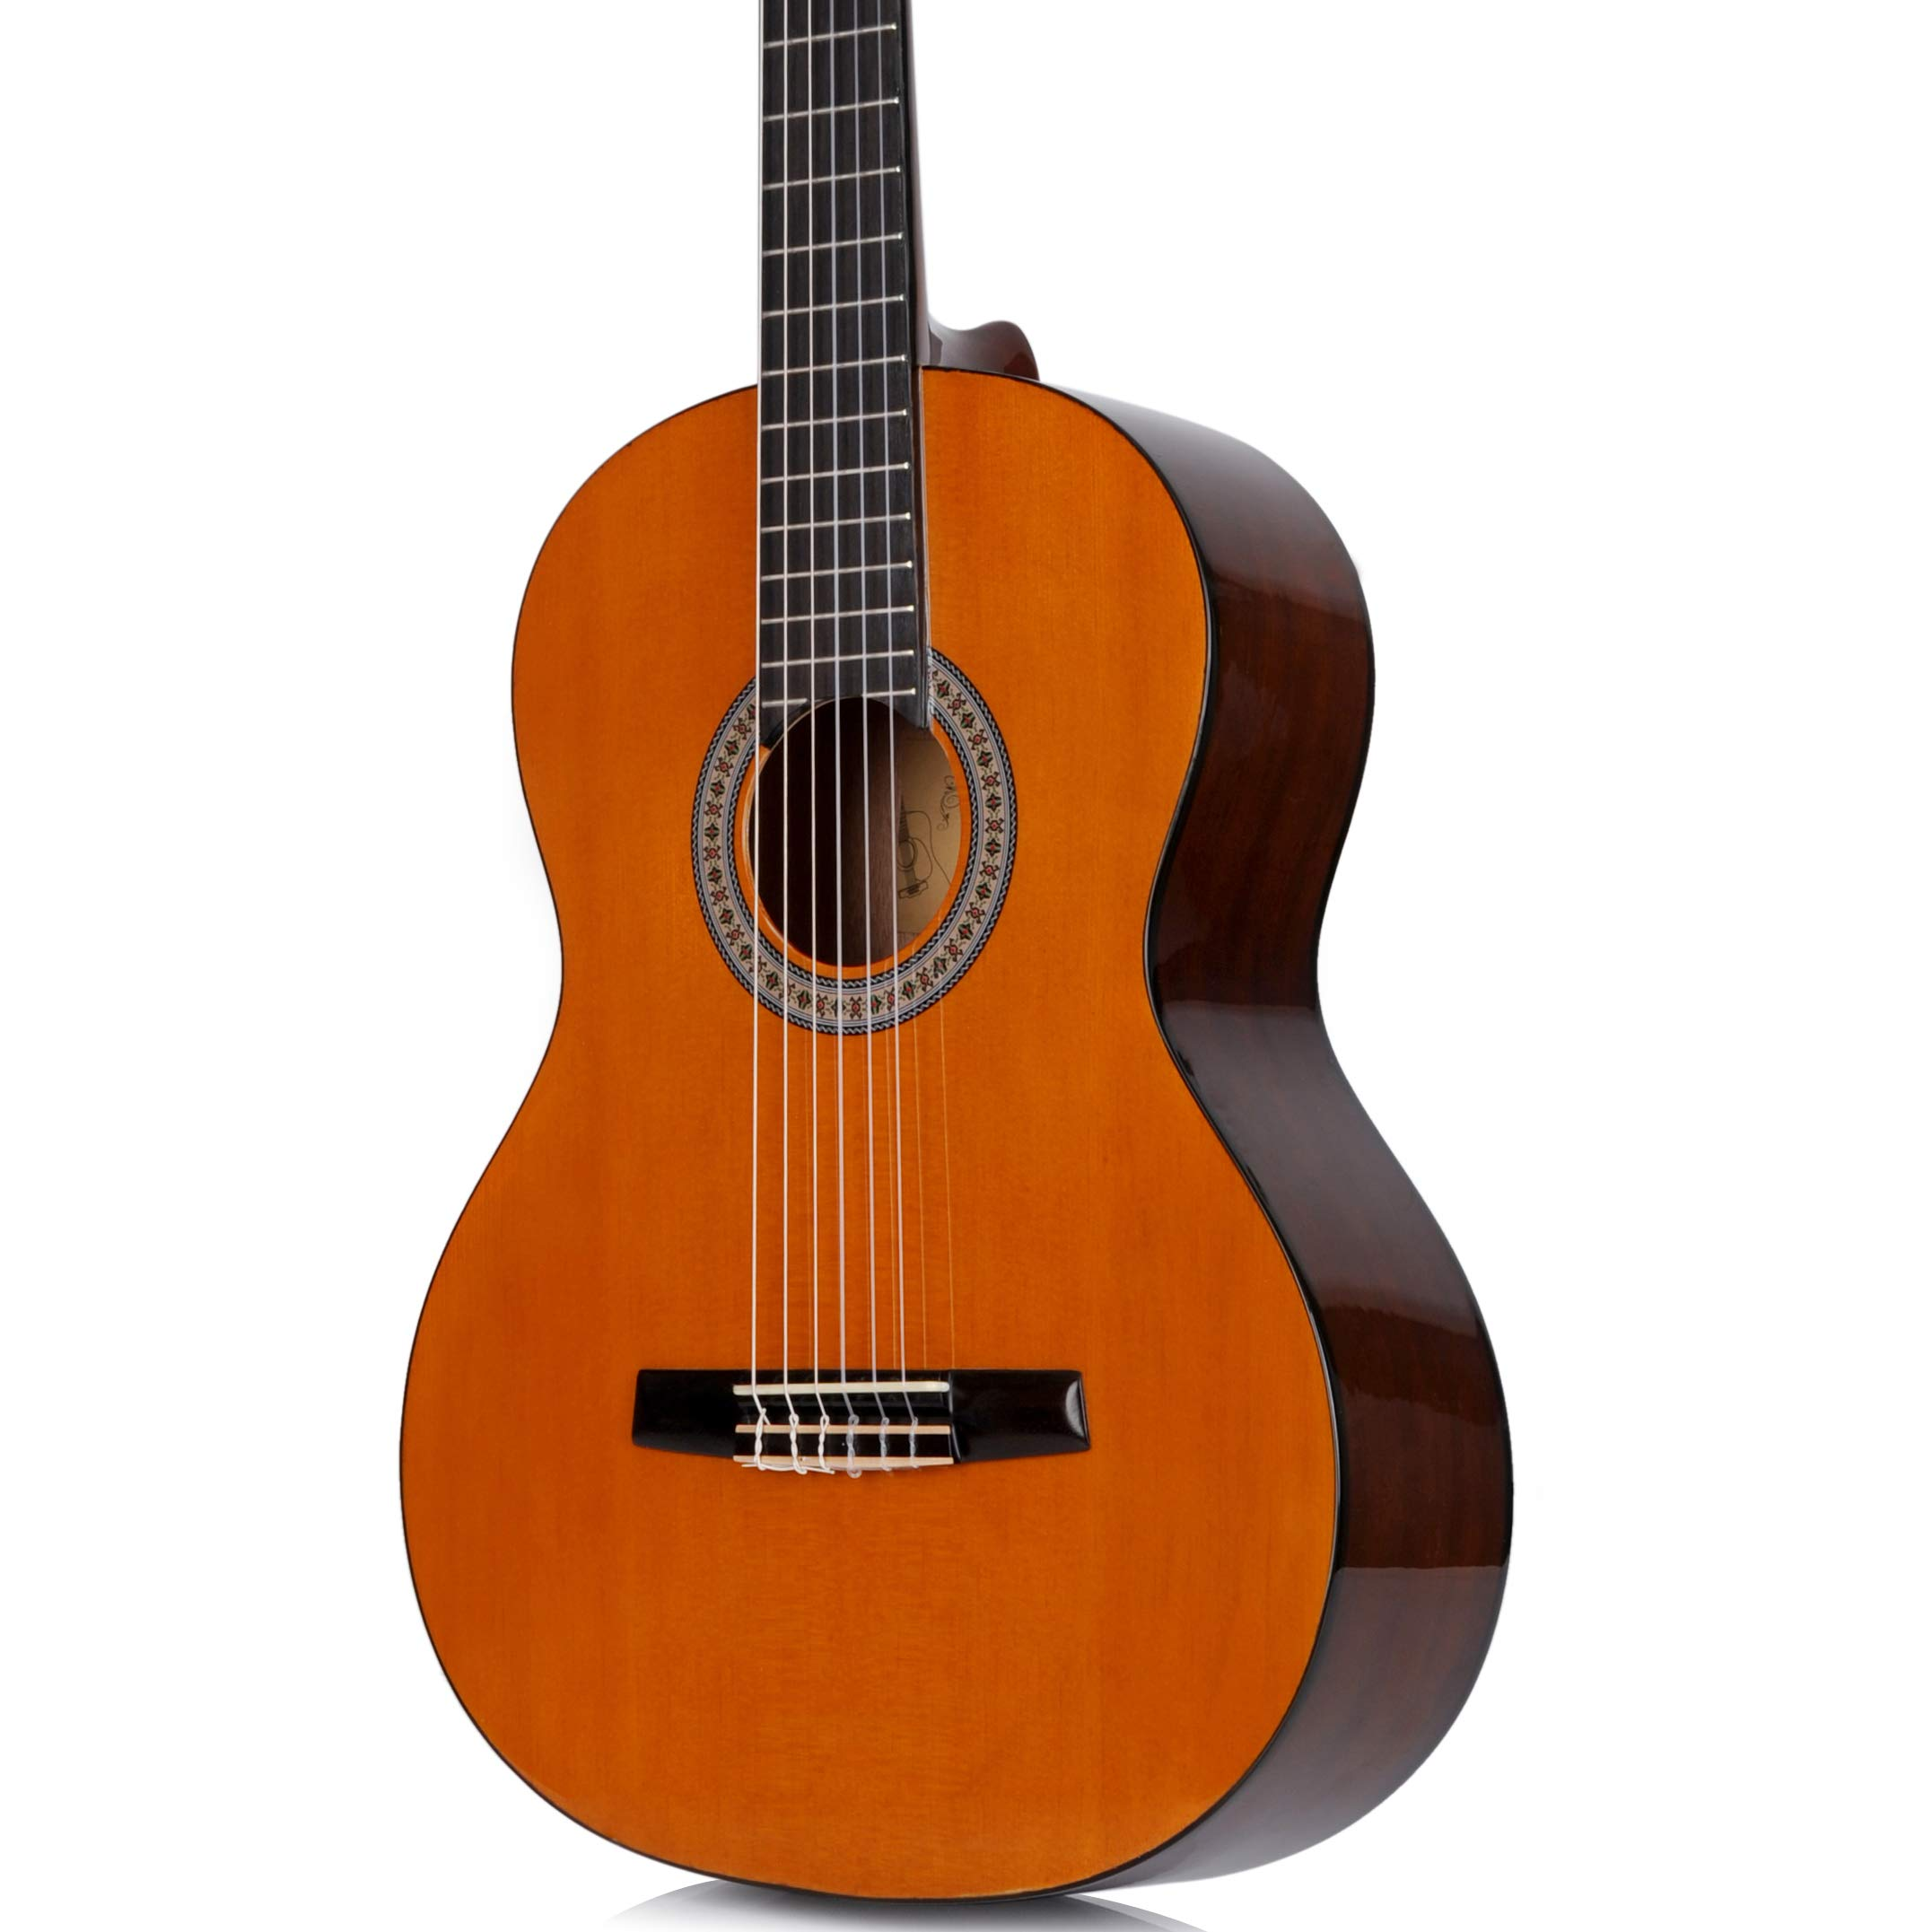 Classical Guitar WINZZ 39 Inches Full Size Nylon String Student Kids Acoustic Guitar with Bag, Tuner, Stand, Capo